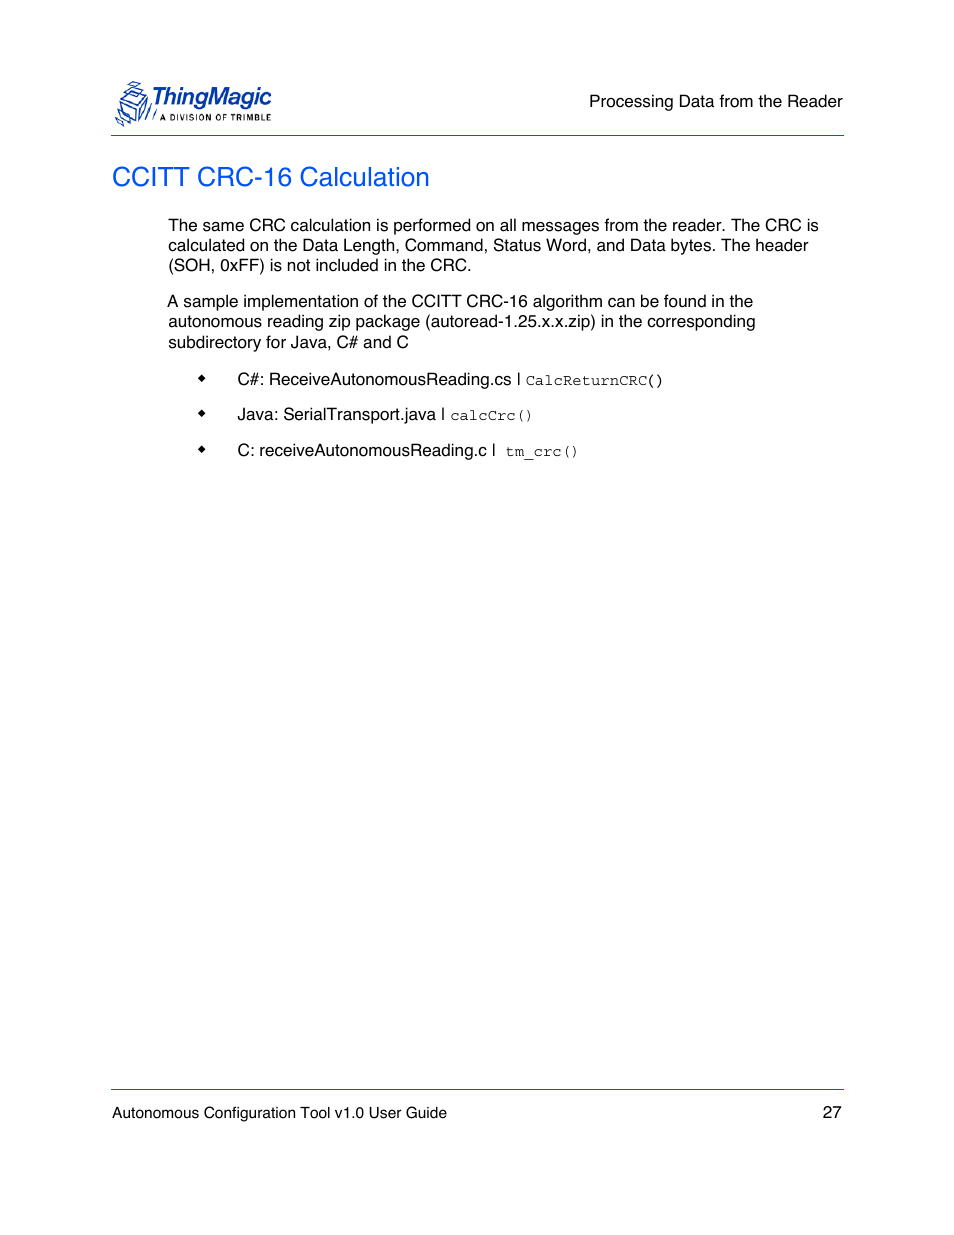 Ccitt crc-16 calculation, Ccitt crc-16, Calculation | ThingMagic